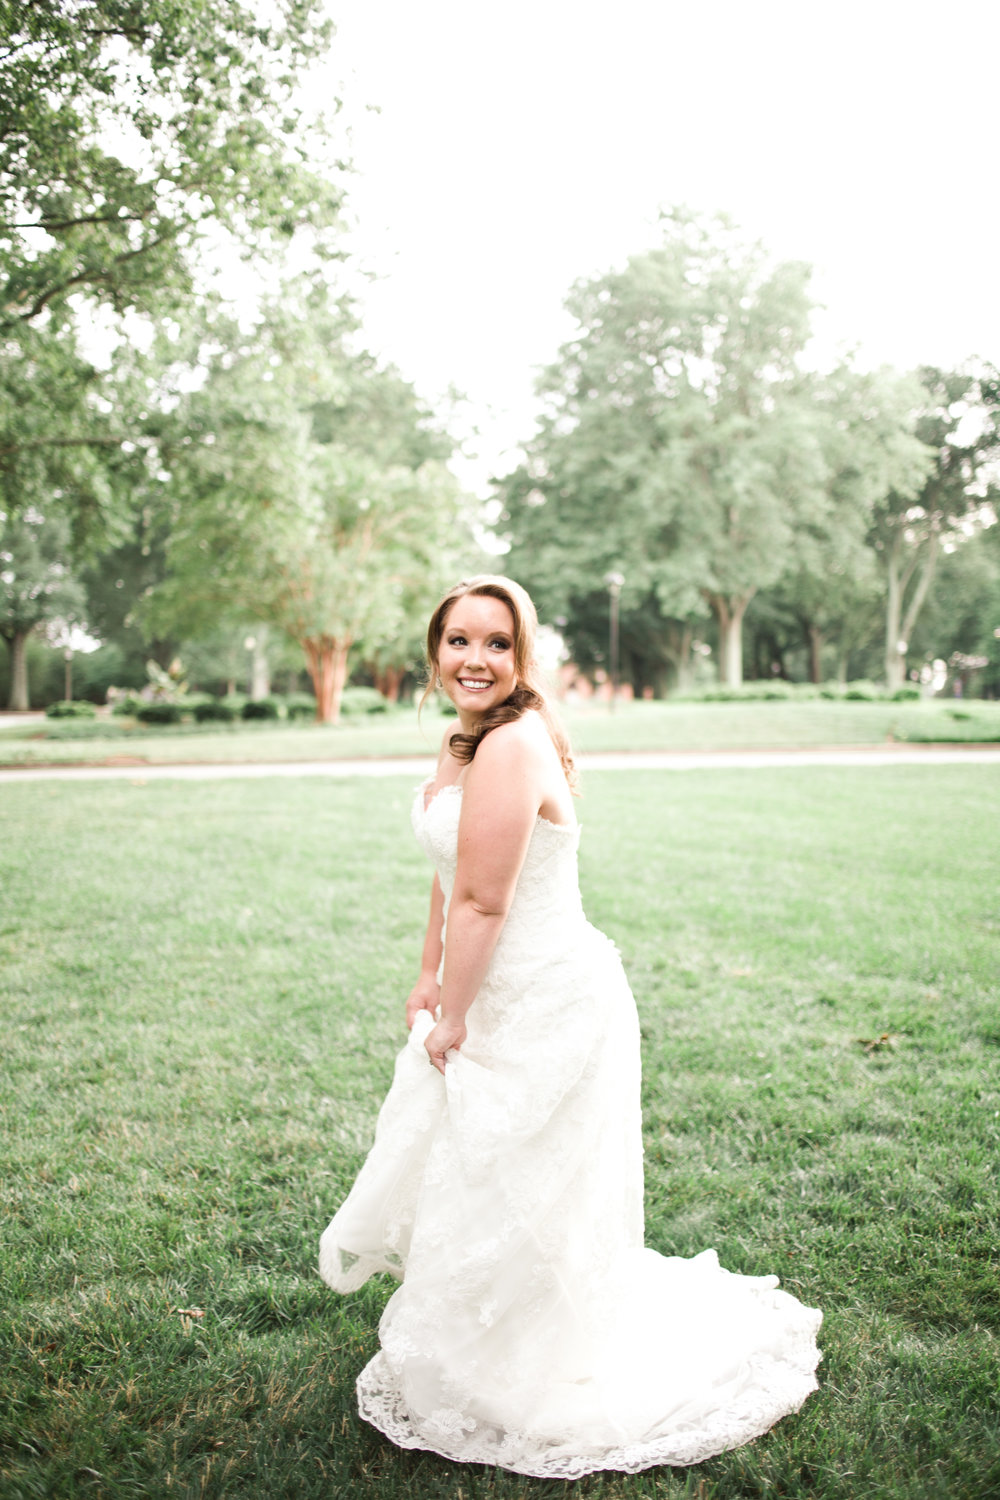 gabbie_bridal_poured_out_photography-21.jpg